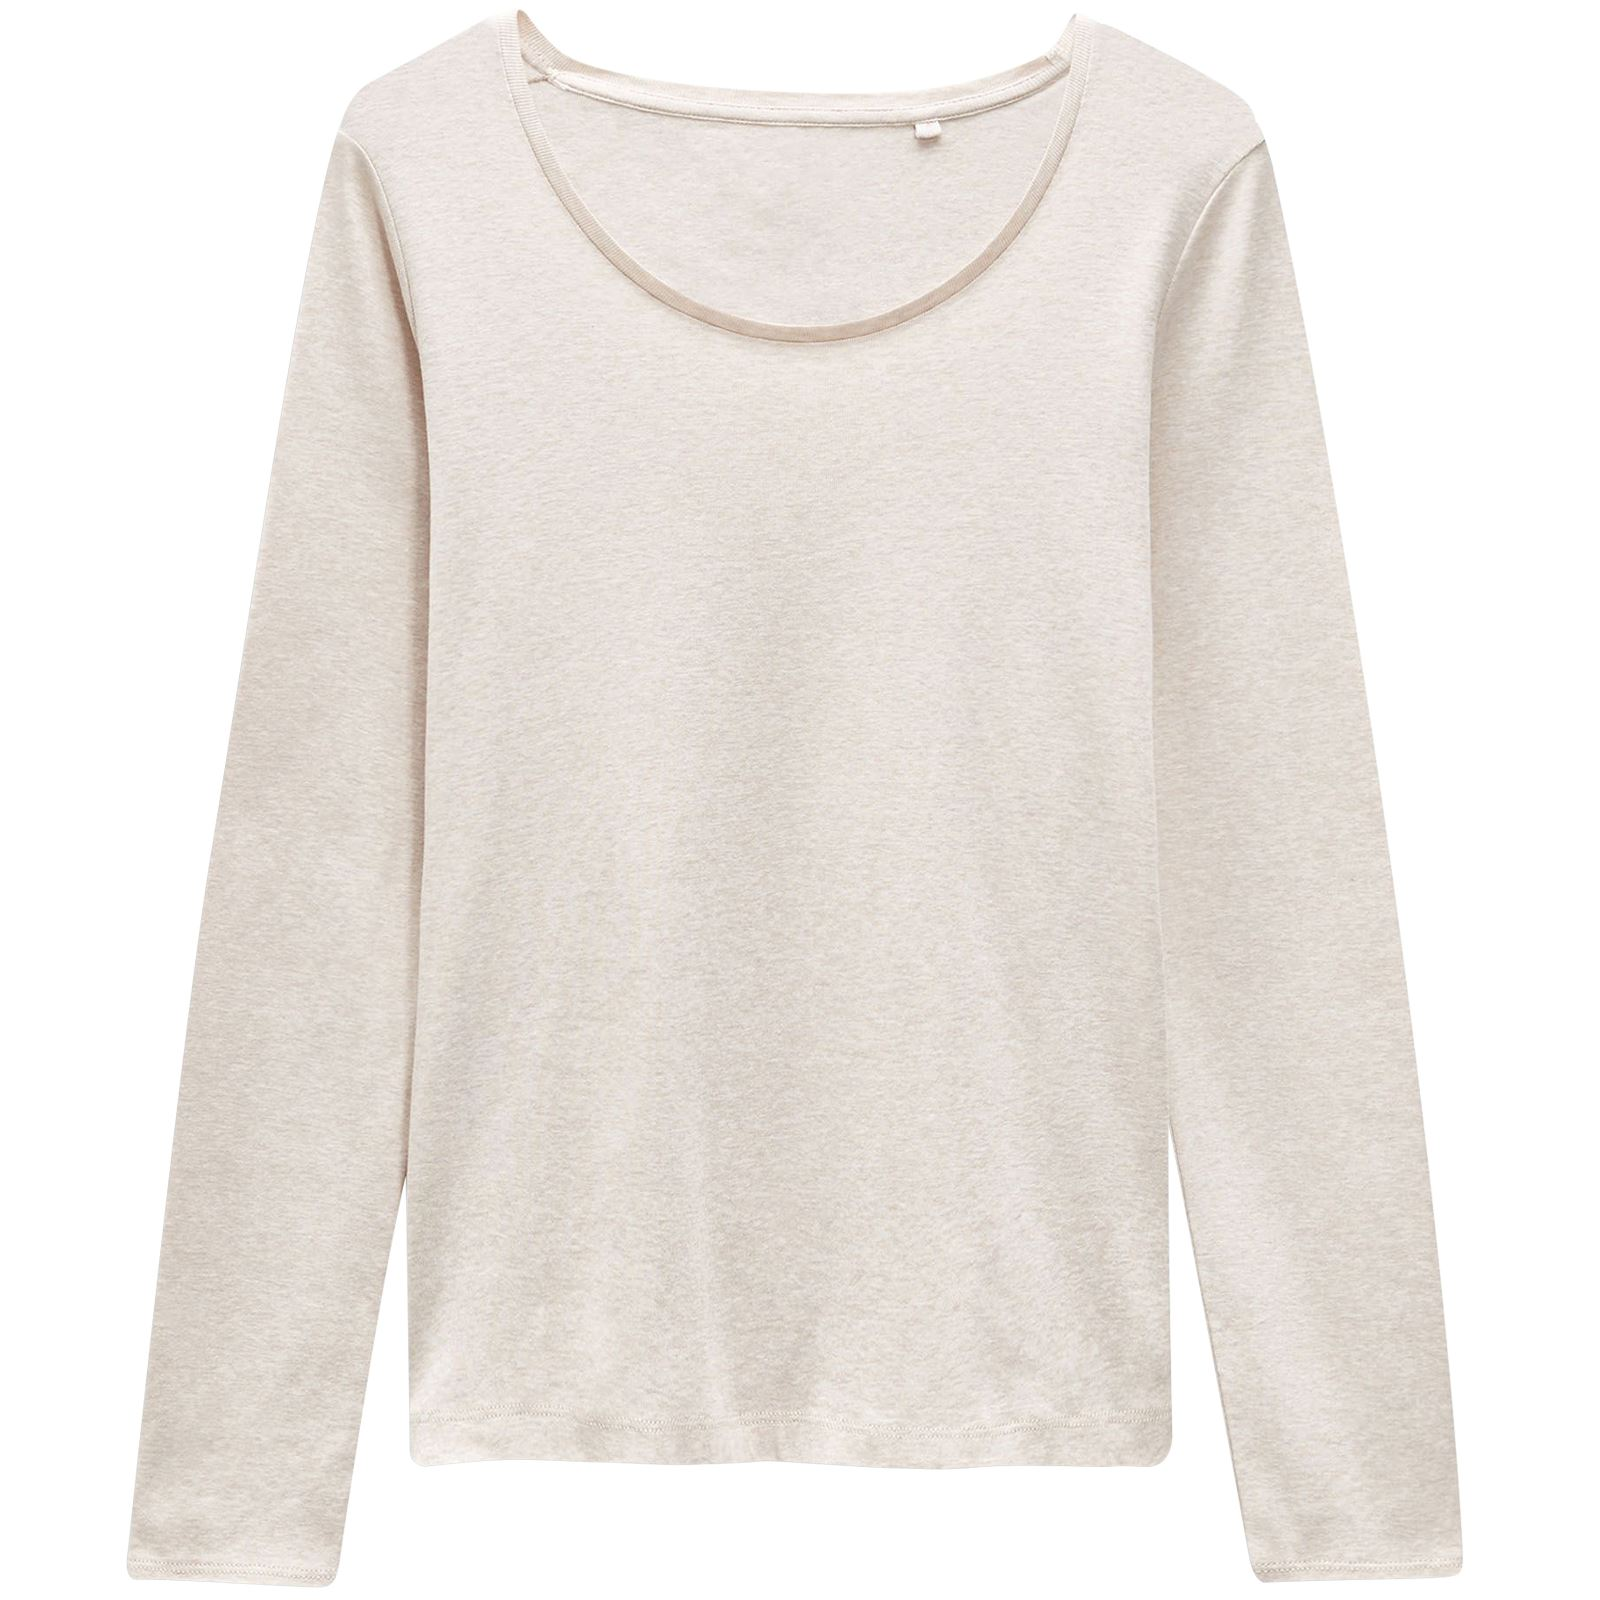 New-Ladies-Womens-Scoop-Neck-Long-Sleeve-Cotton-T-Shirt-Top-Plus-Size-6-24